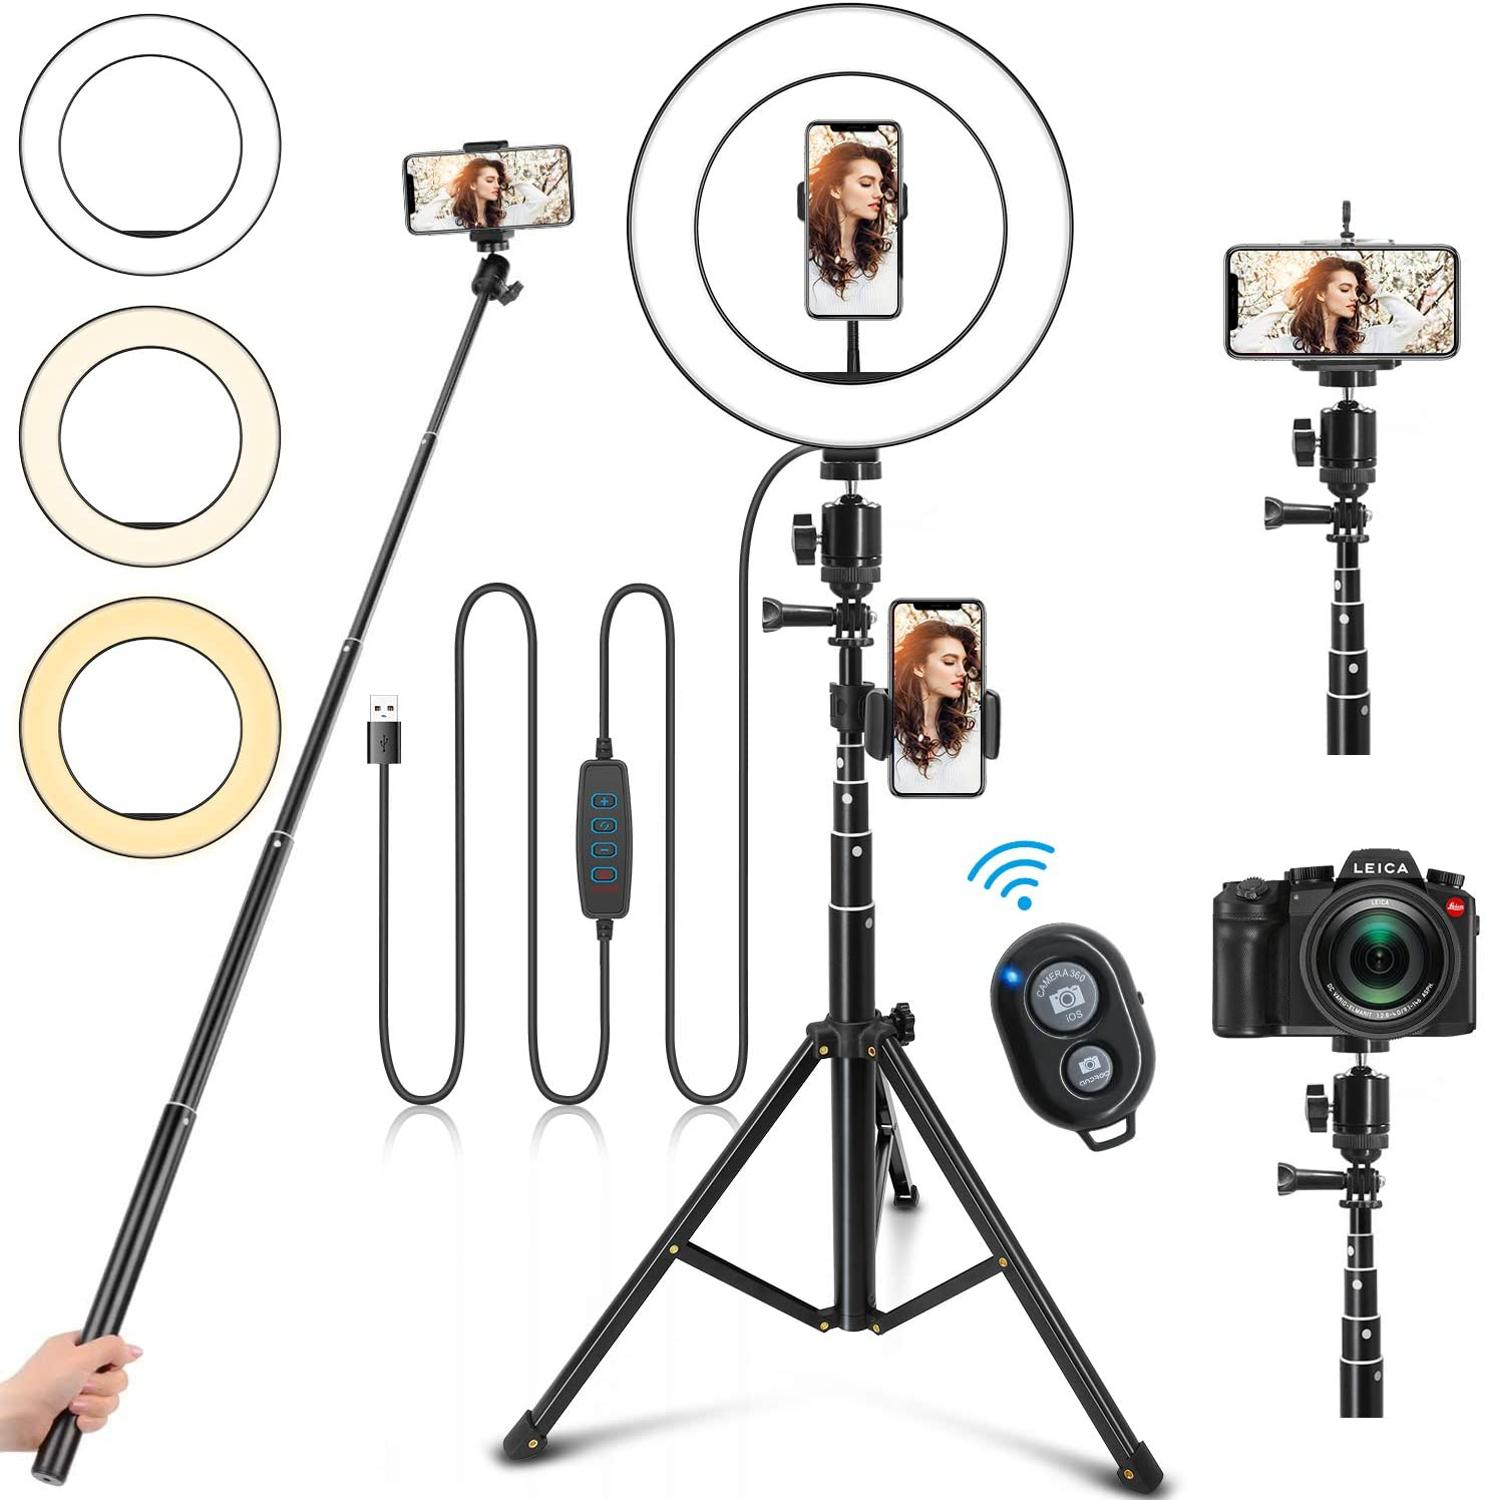 16 26cm LED Ring Light with Stand Photography Flash Lamp with 160cm Selfie Stick Bluetooth for Makeup Youtube VK Live Fill Light